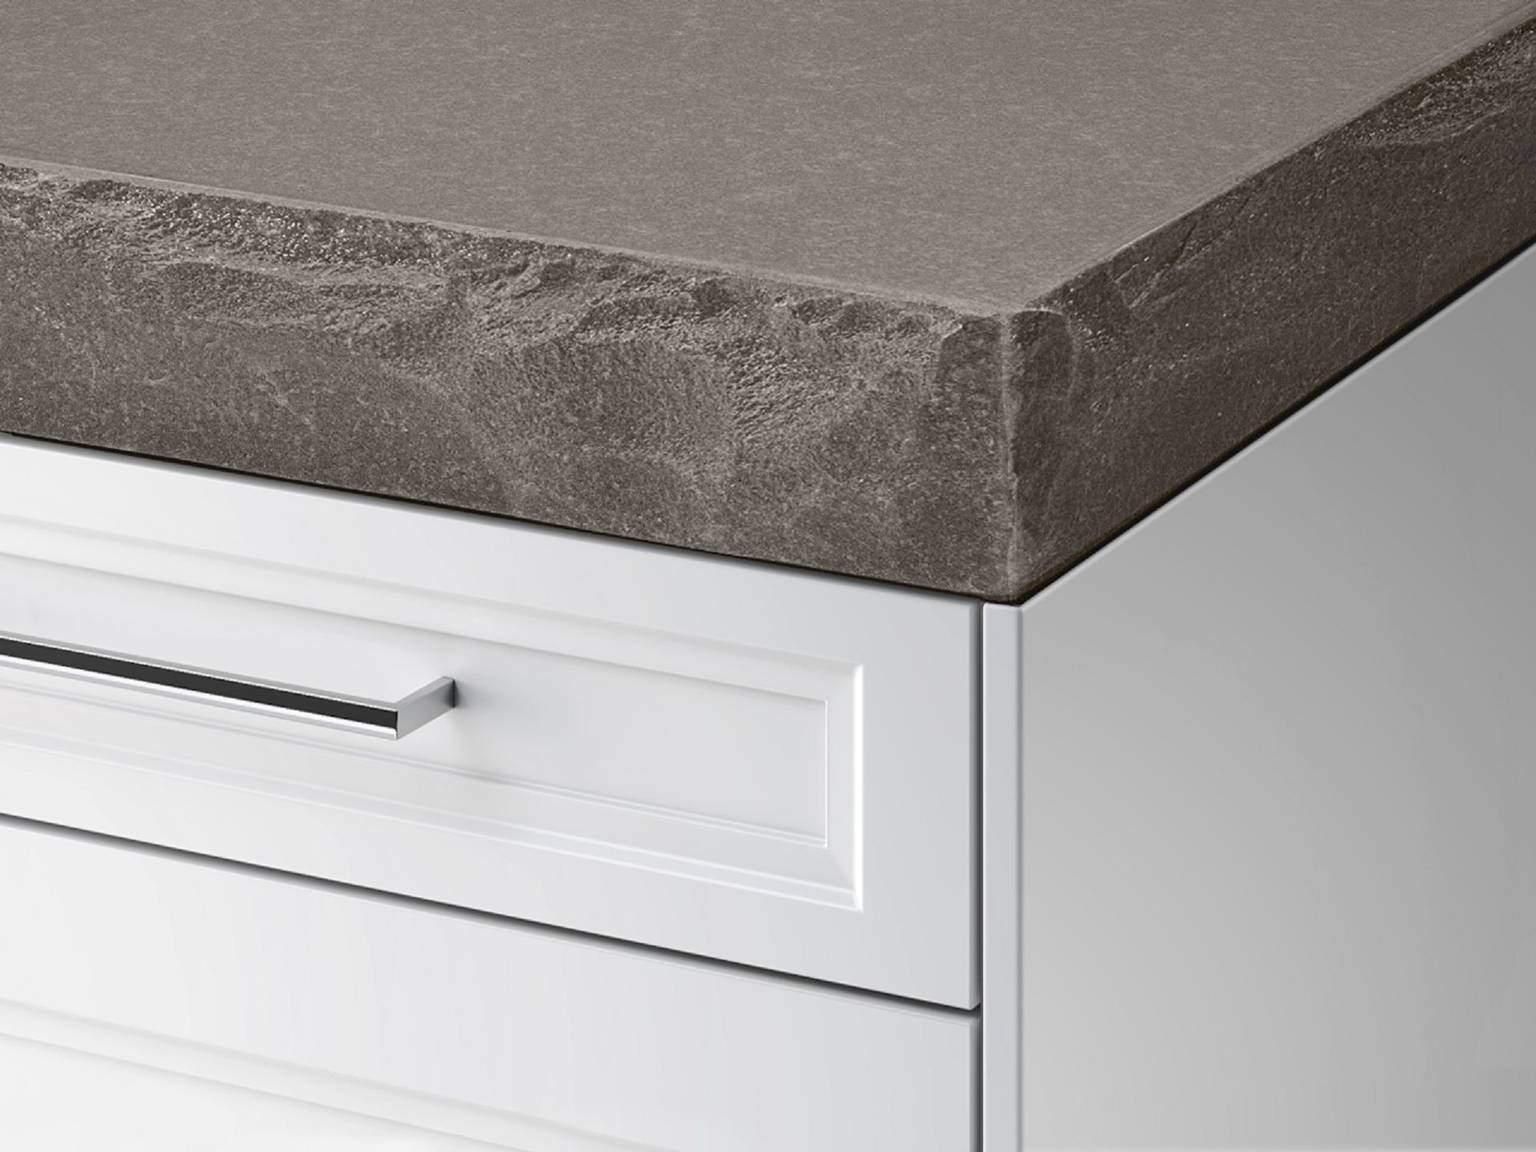 SieMatic StoneDesign kitchen countertop with embossed edge